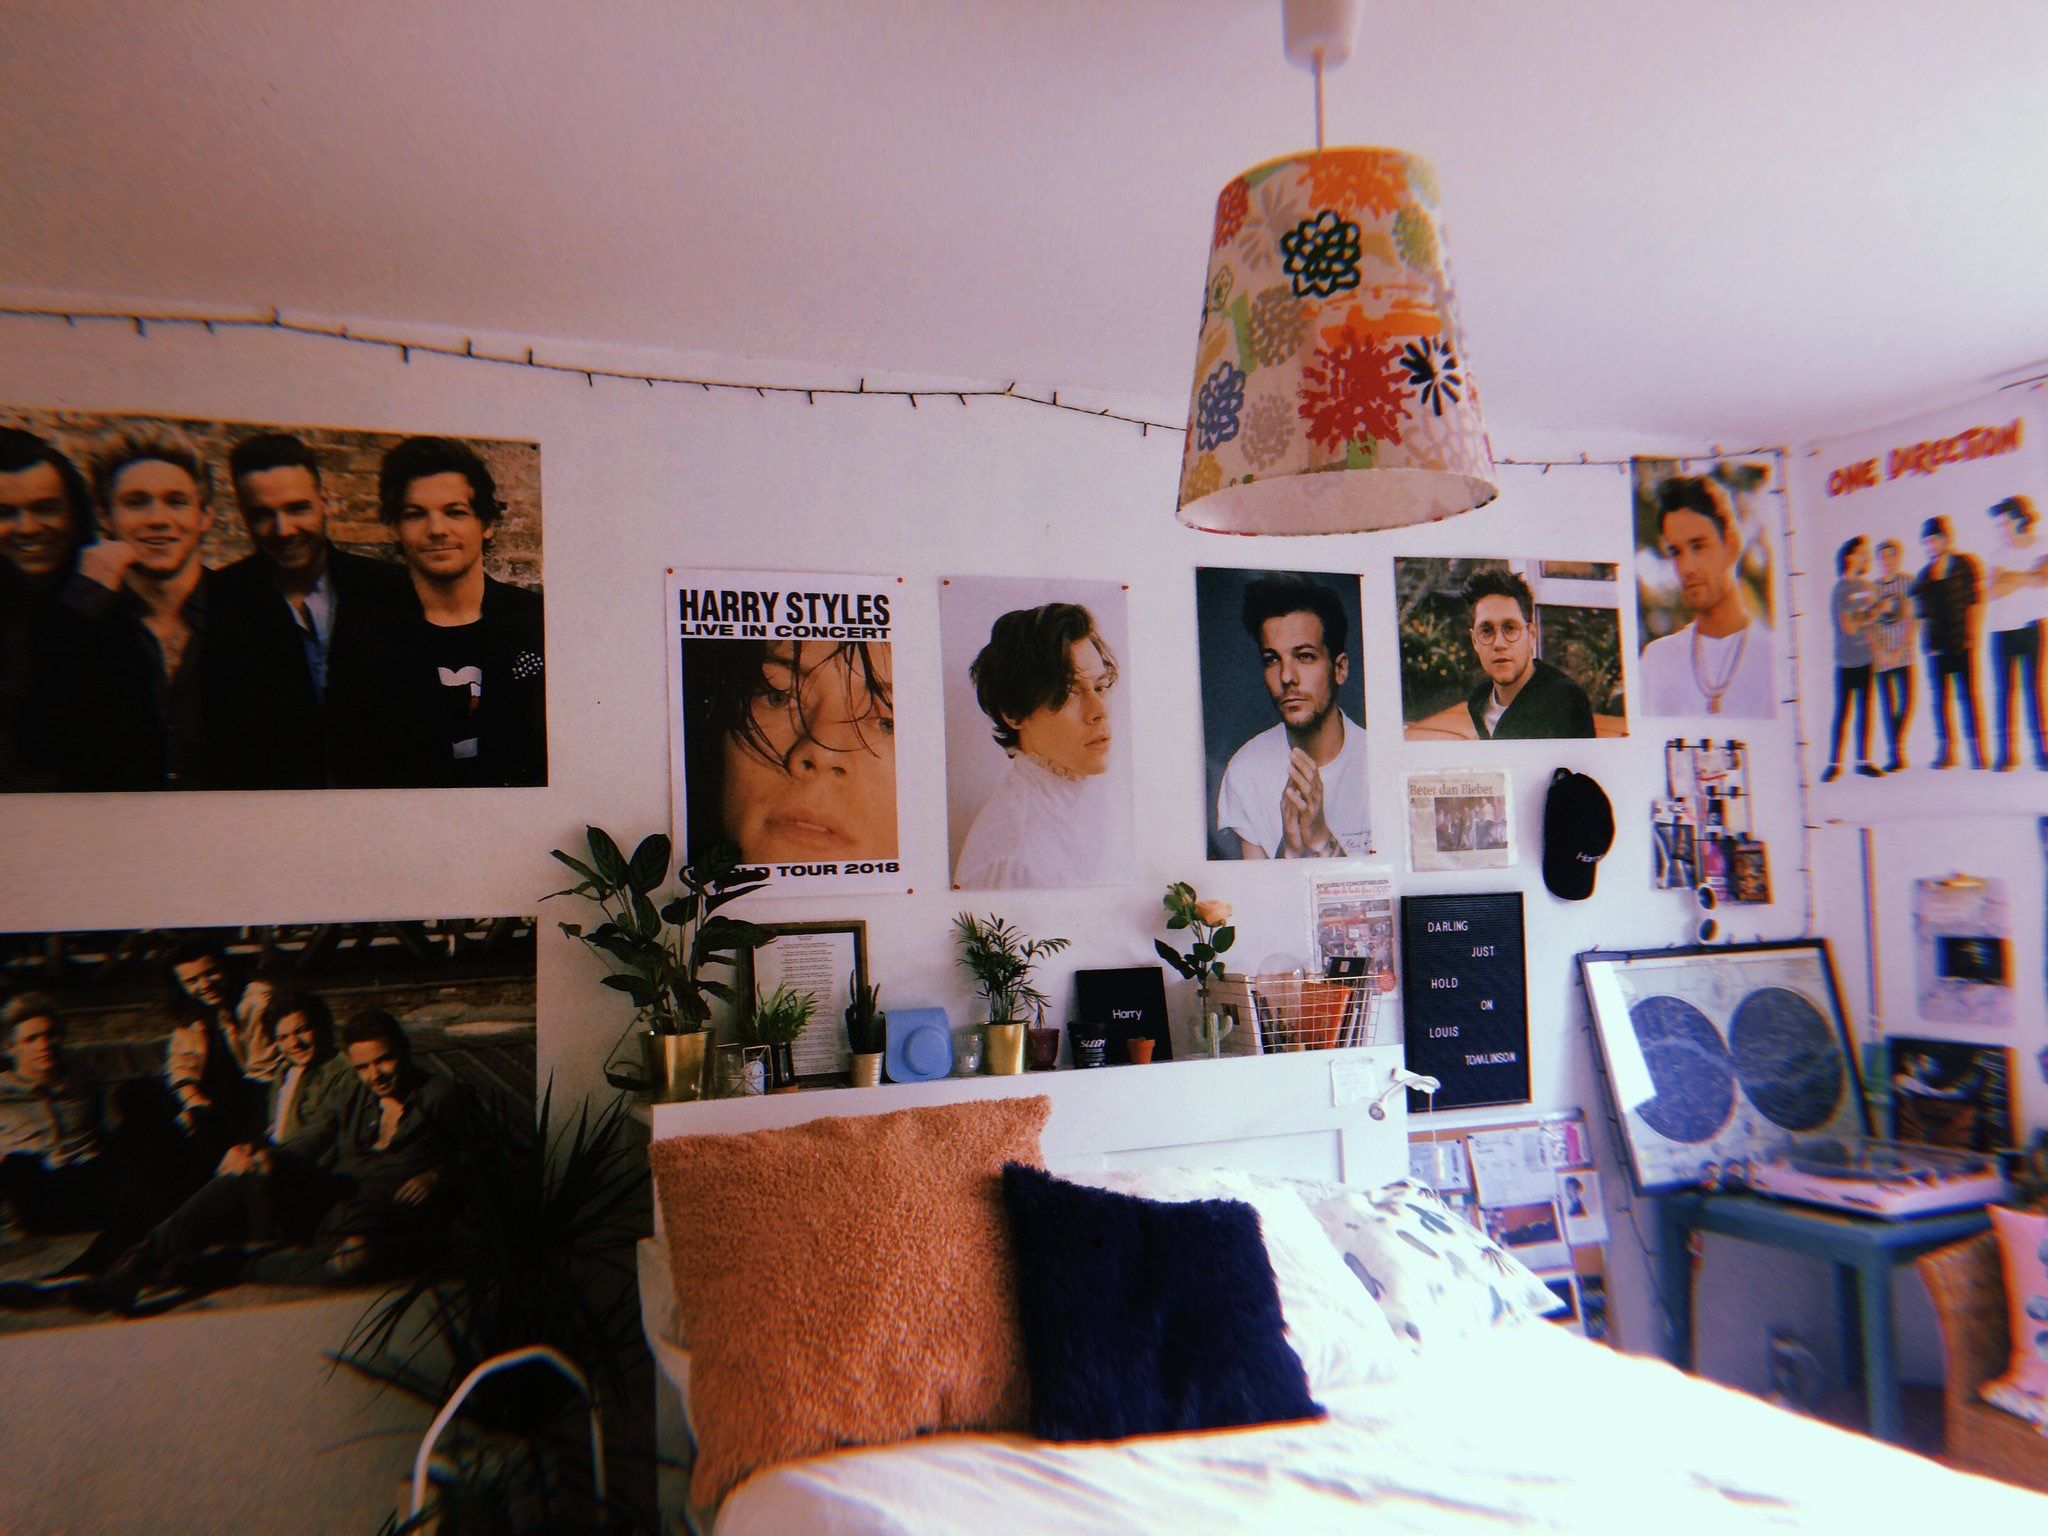 Pin By Ariana Gcc On Home Indie Room Retro Room One Direction Room